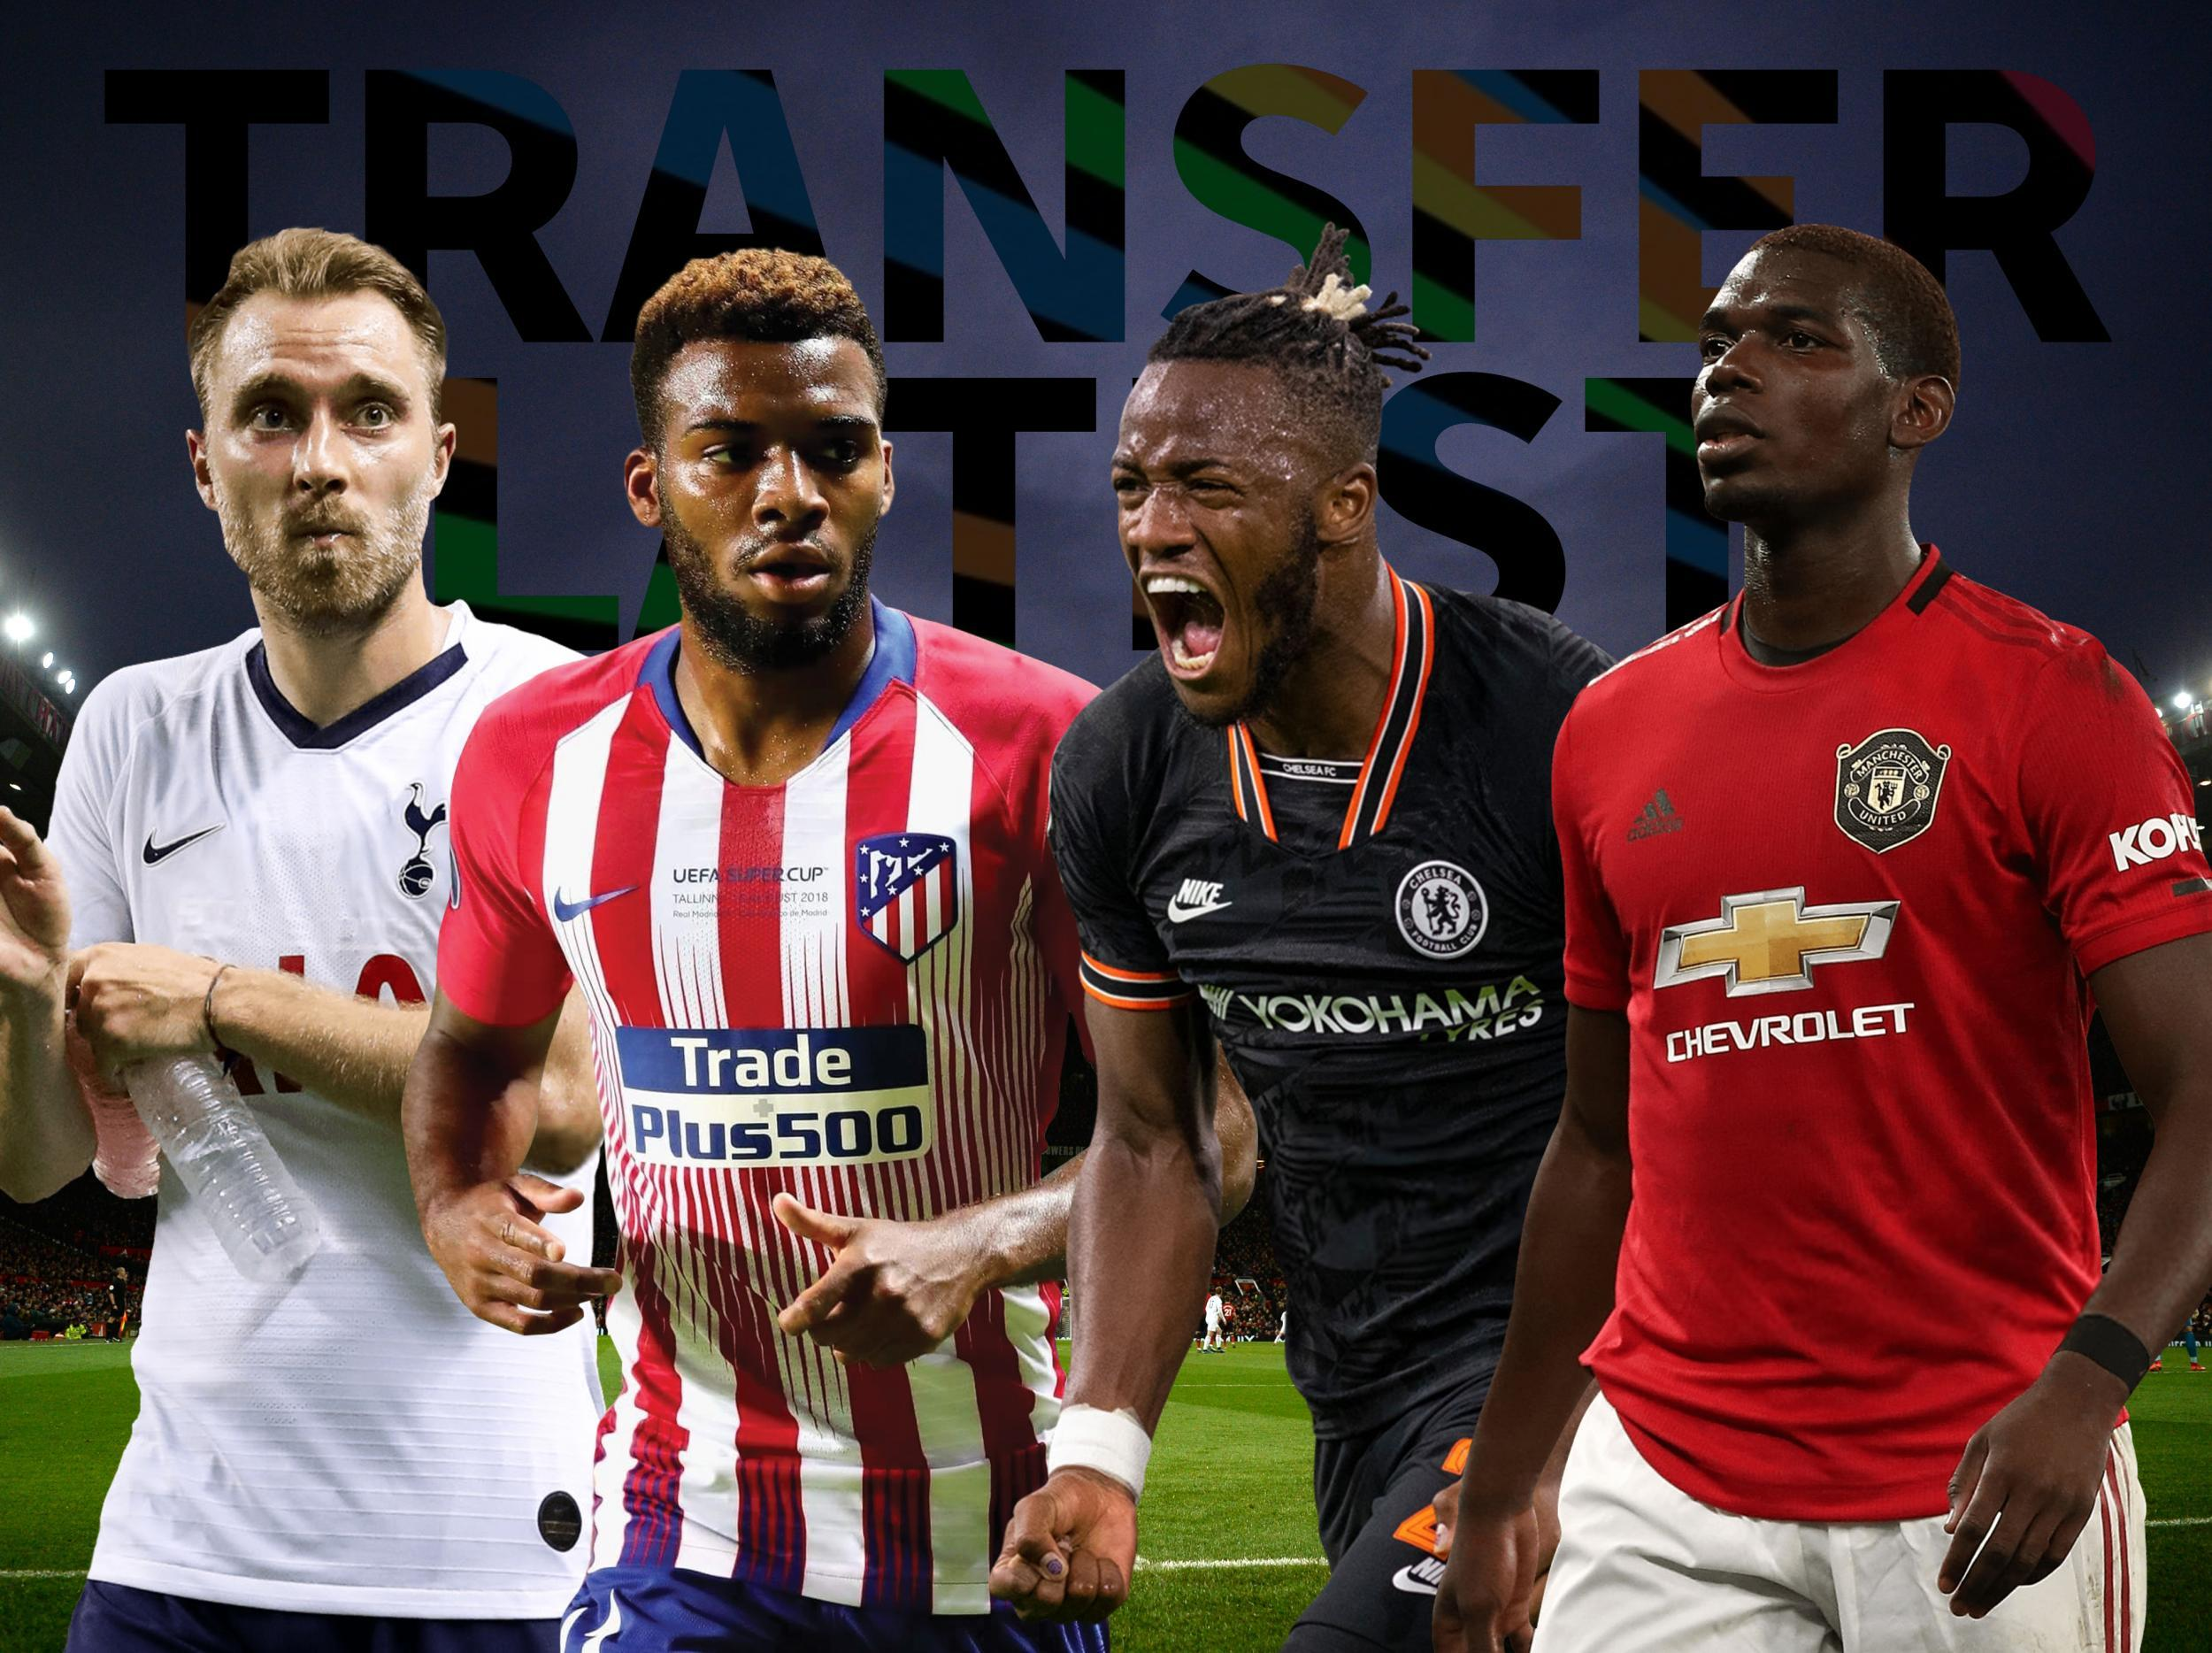 Transfer news LIVE: Arsenal, Chelsea, Manchester United and Tottenham gossip and rumours today